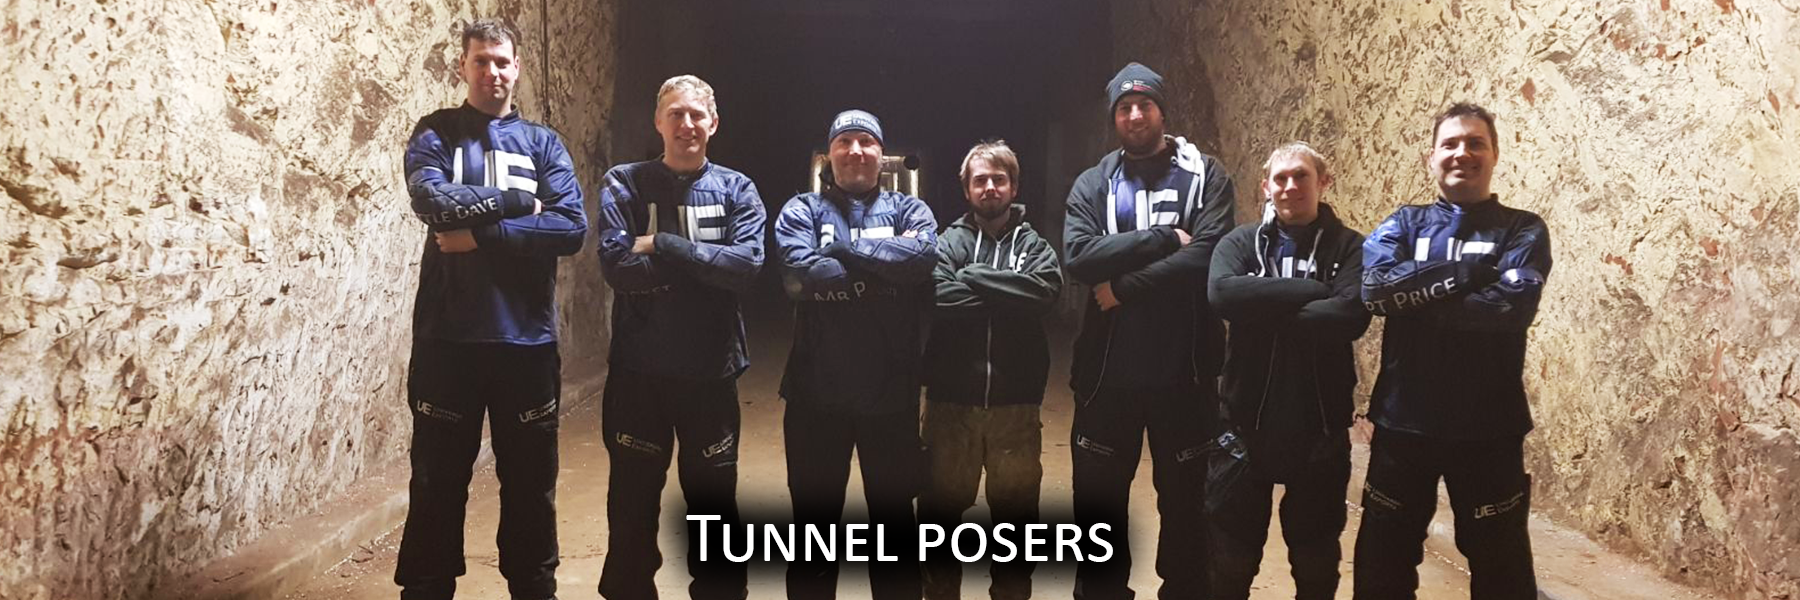 Tunnel posers